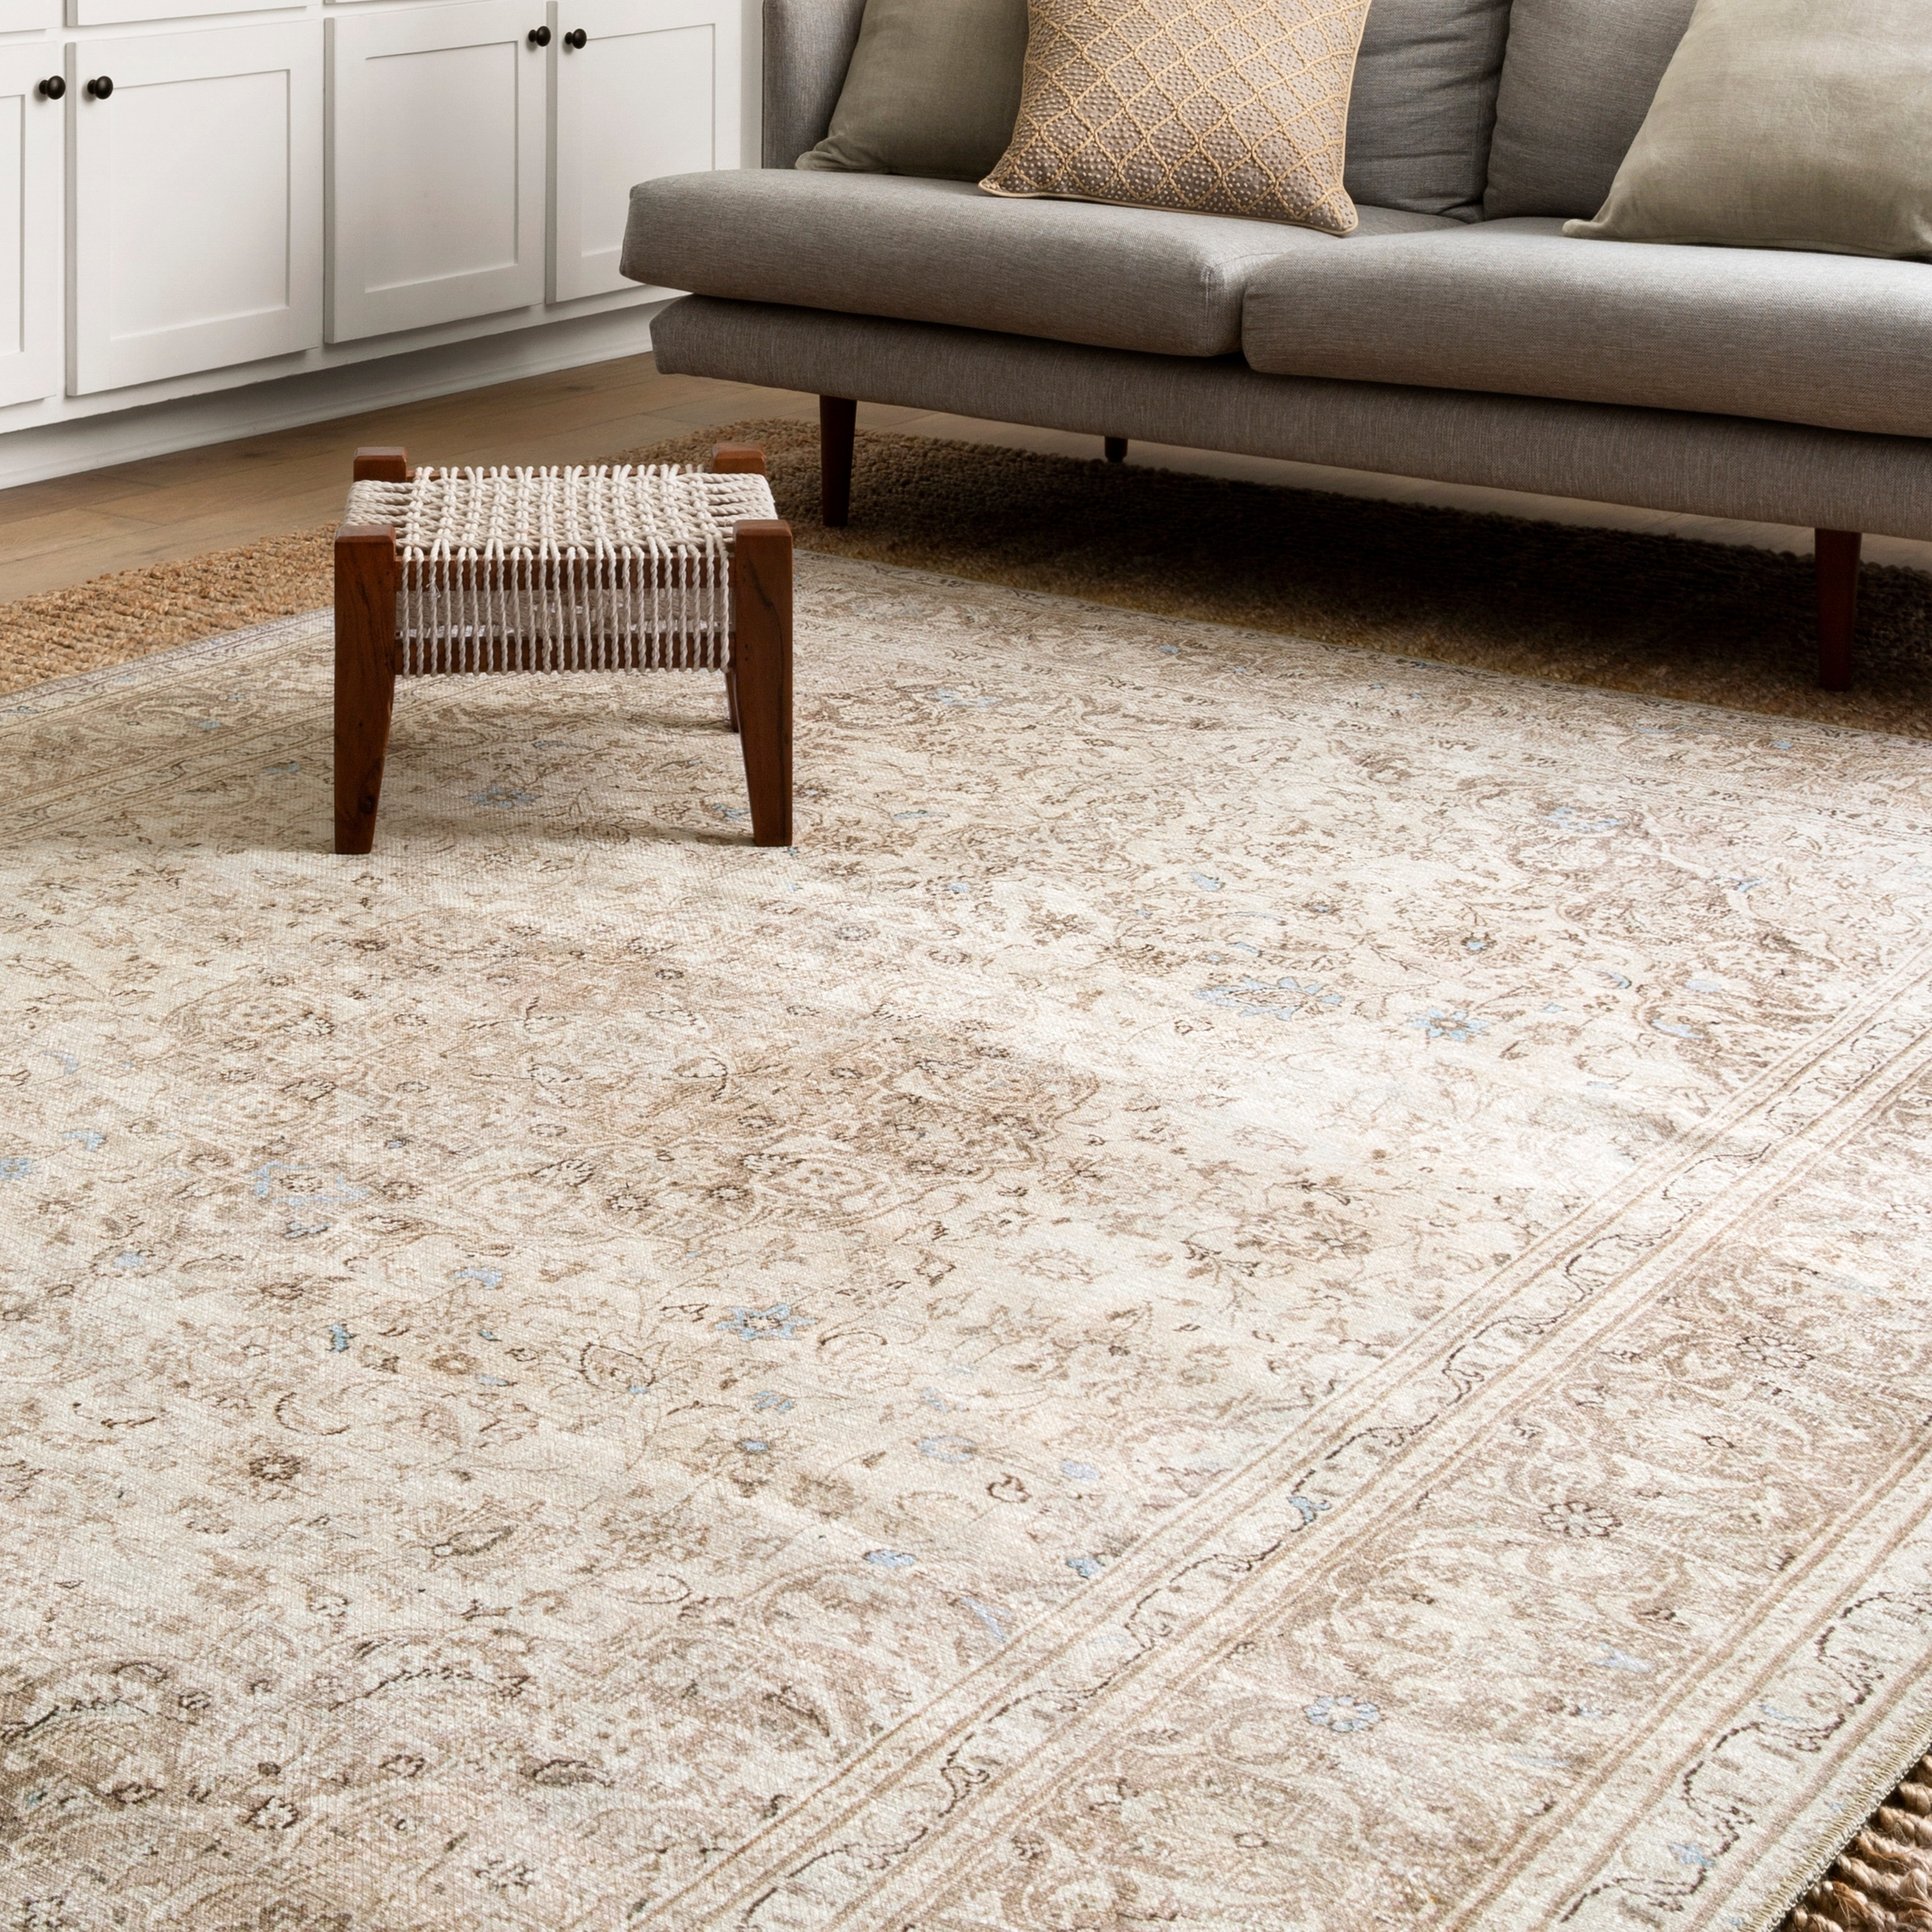 Alexander Home Beige/Taupe Distressed Medallion Area Rug - 84 x 116 (Sand/Taupe - 84 x 116)